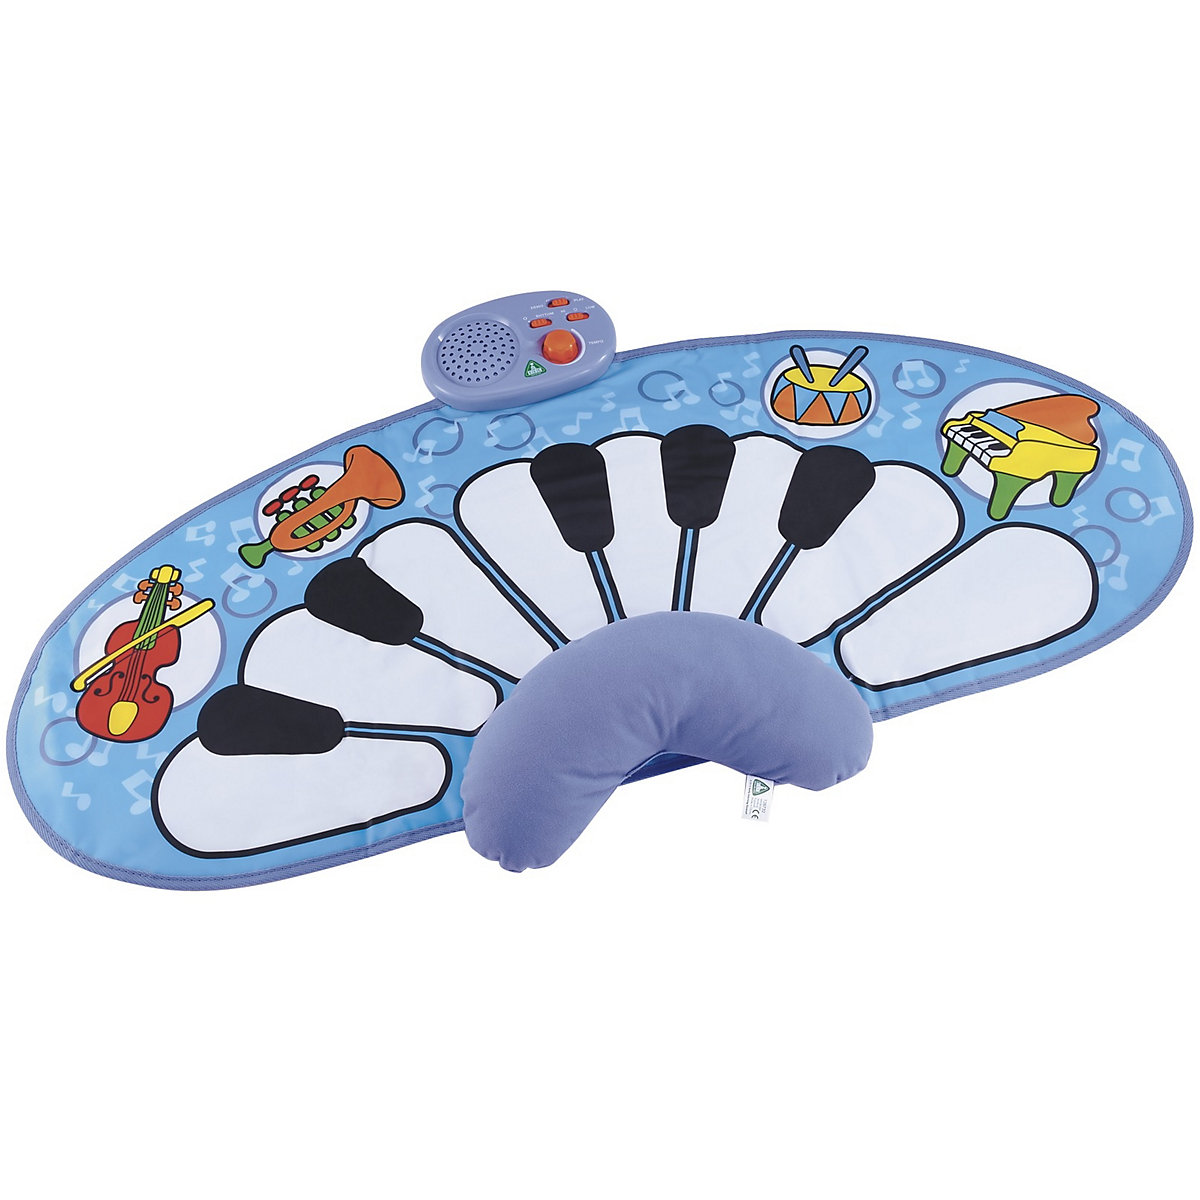 New ELC Boys and Girls Baby Percussion Mat Musical Baby Toy From 6 months - Toddler Gifts